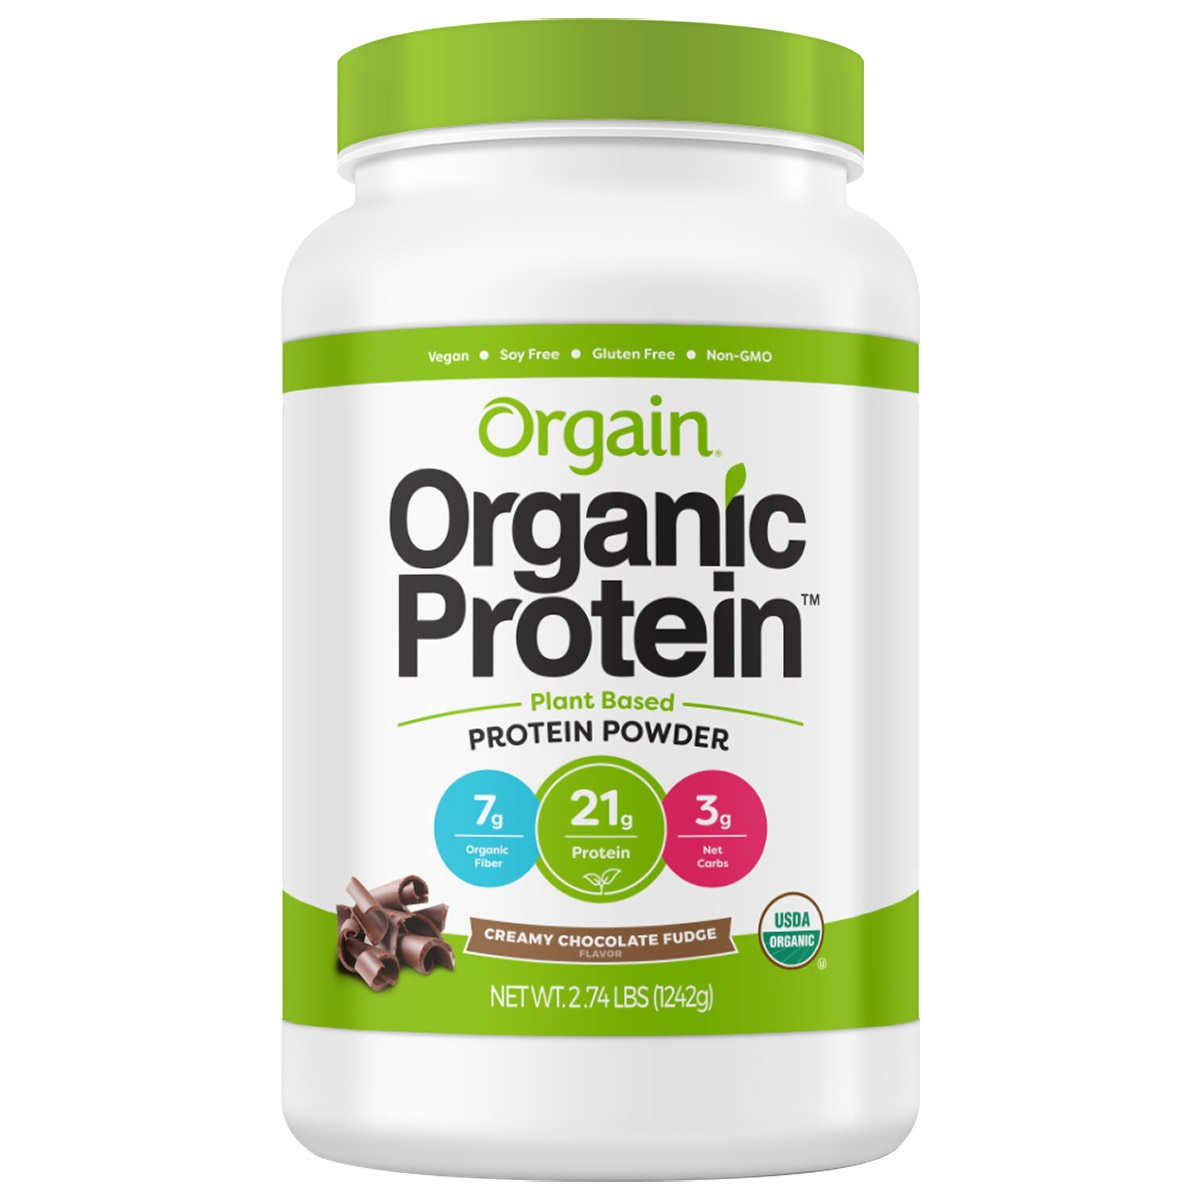 Orgain Organic Plant Based Protein Powder, Chocolate Fudge, Vegan, Gluten Free, Kosher, Non-GMO, 2.74 lb, Packaging May Vary